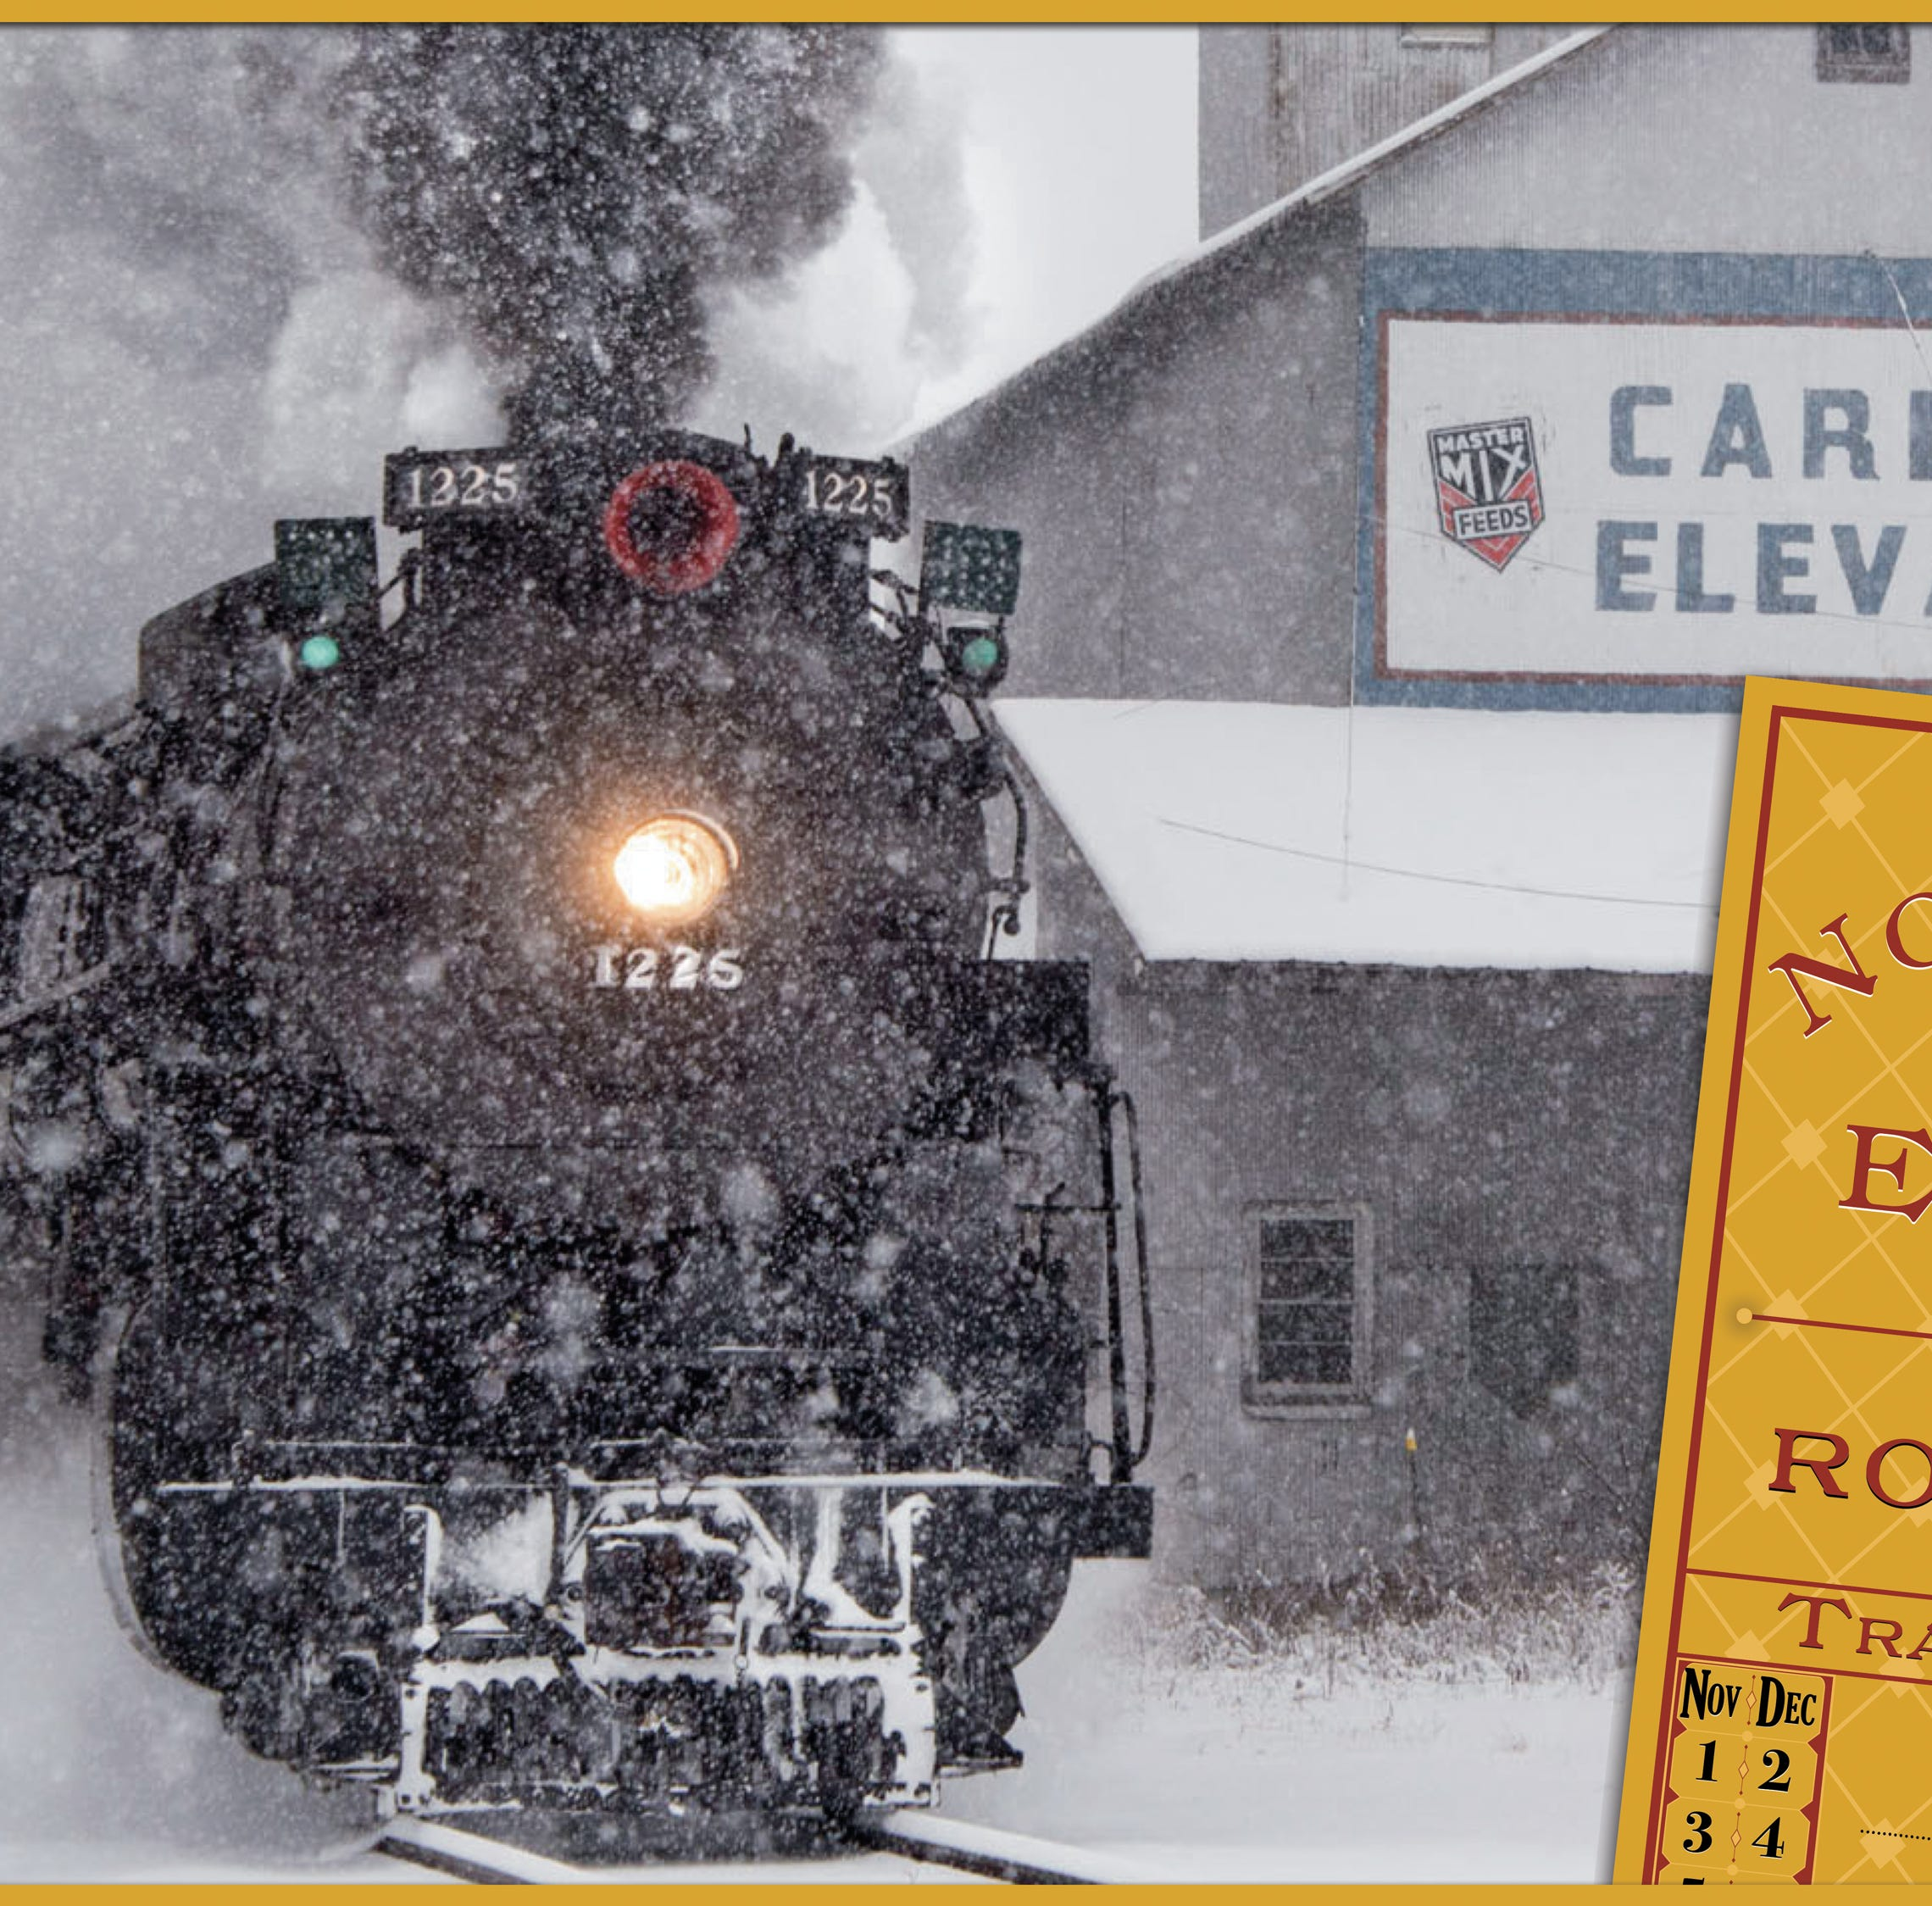 Tickets for Christmas trips on 'Polar Express' train go on sale